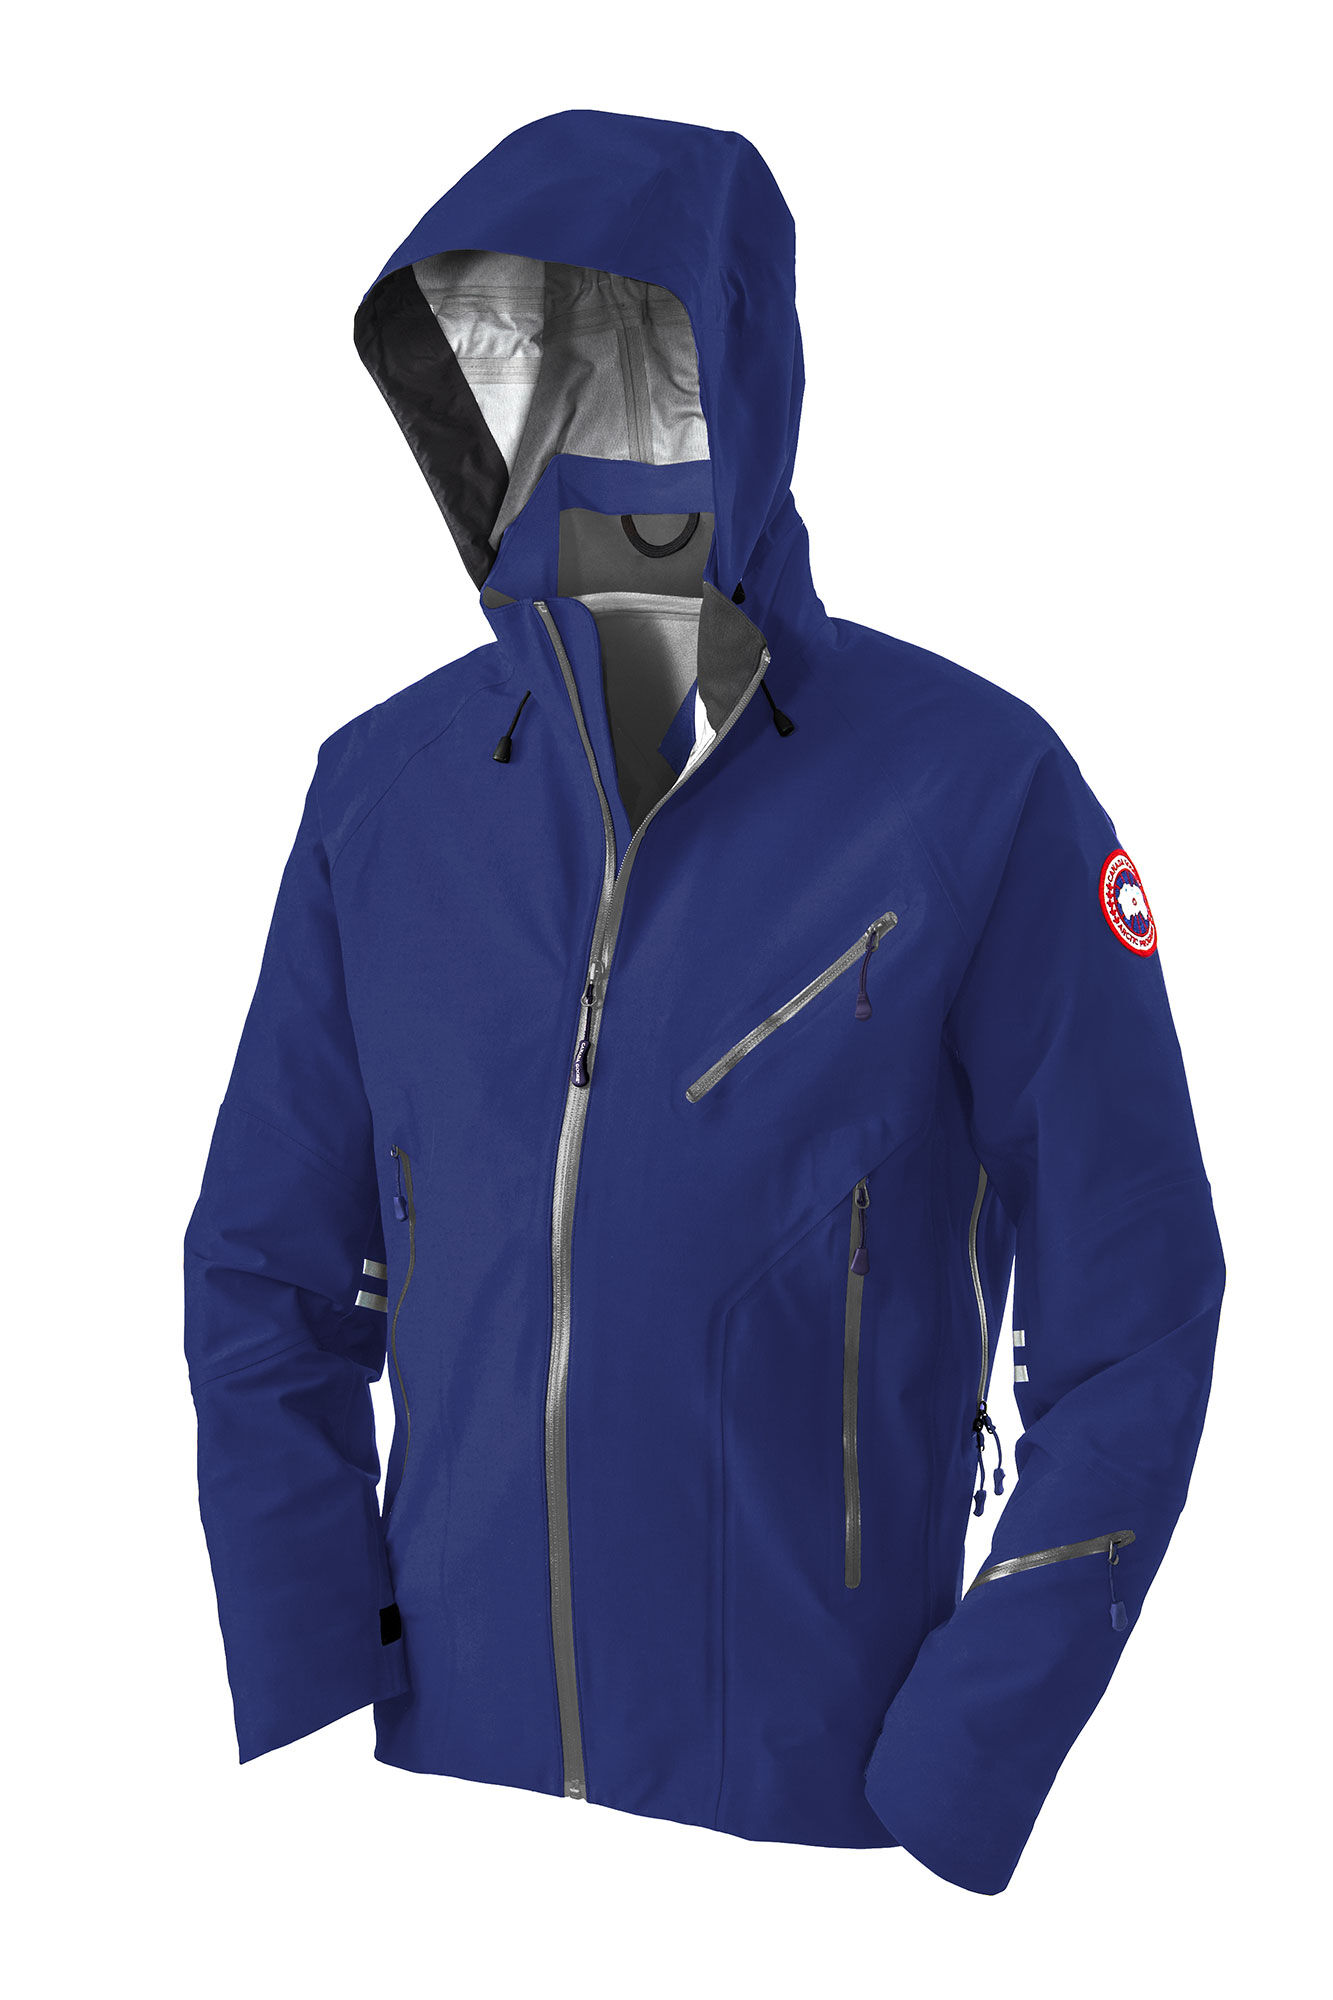 which canada goose jackets are waterproof